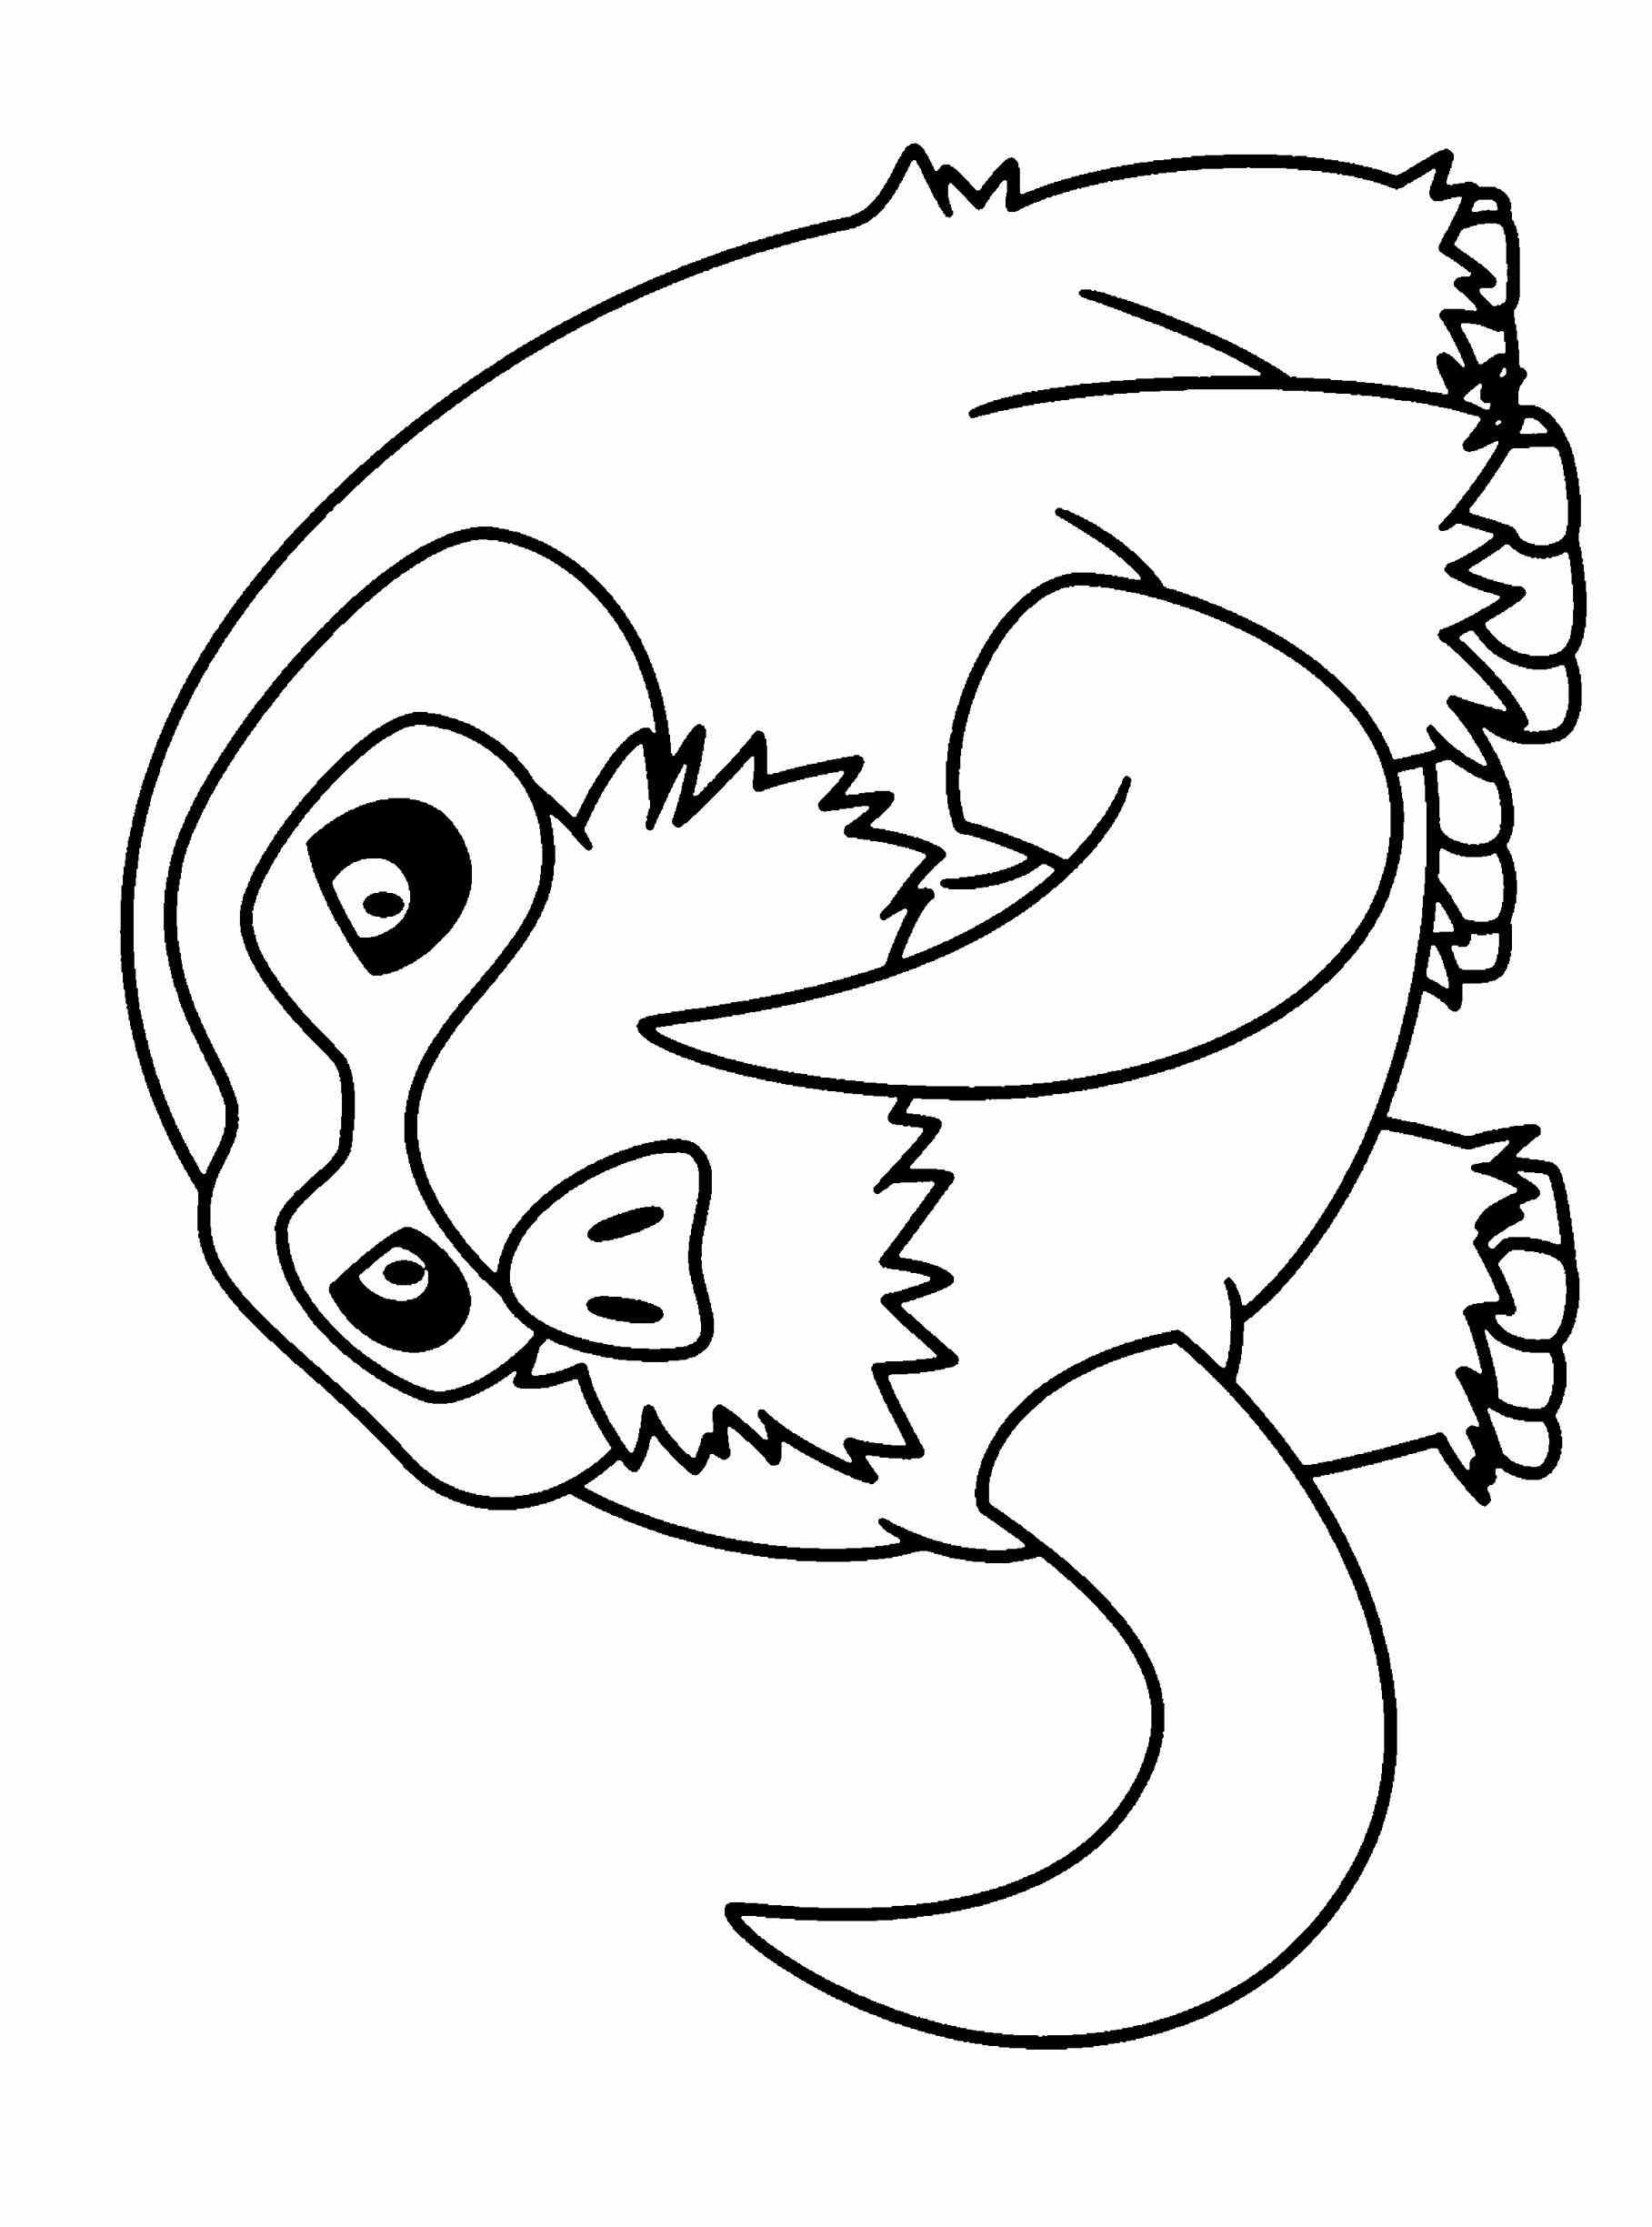 water pokemon coloring pages water pokemon coloring pages at getcoloringscom free pokemon coloring pages water